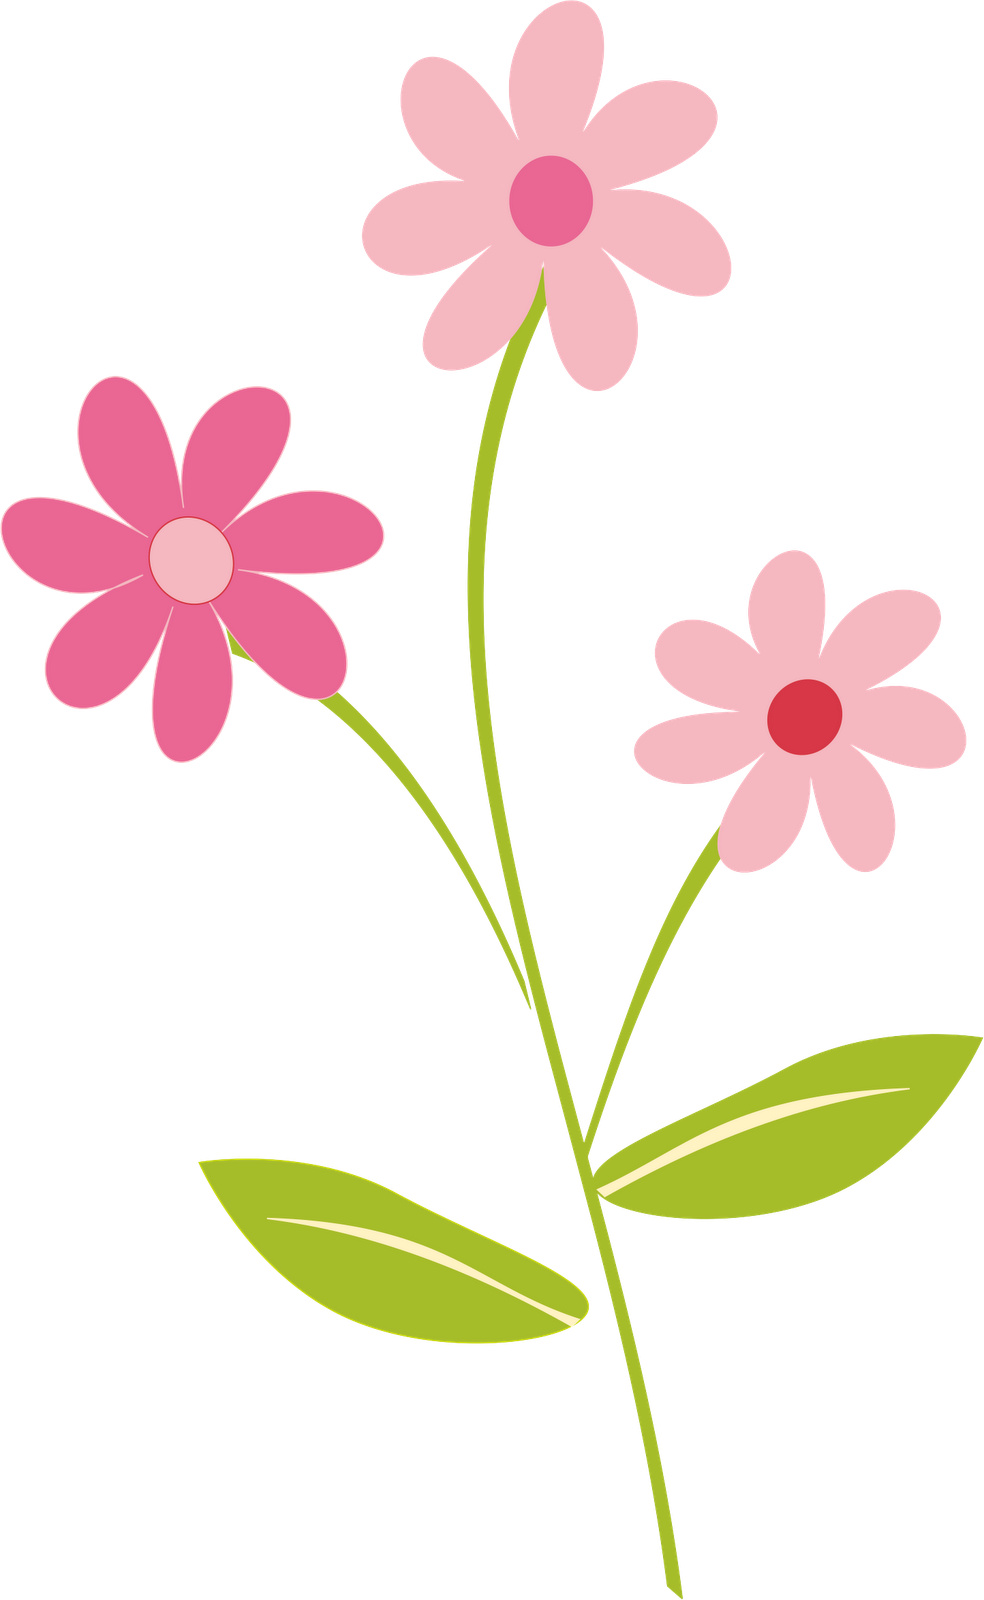 Flower clip art png. Free clipart download on